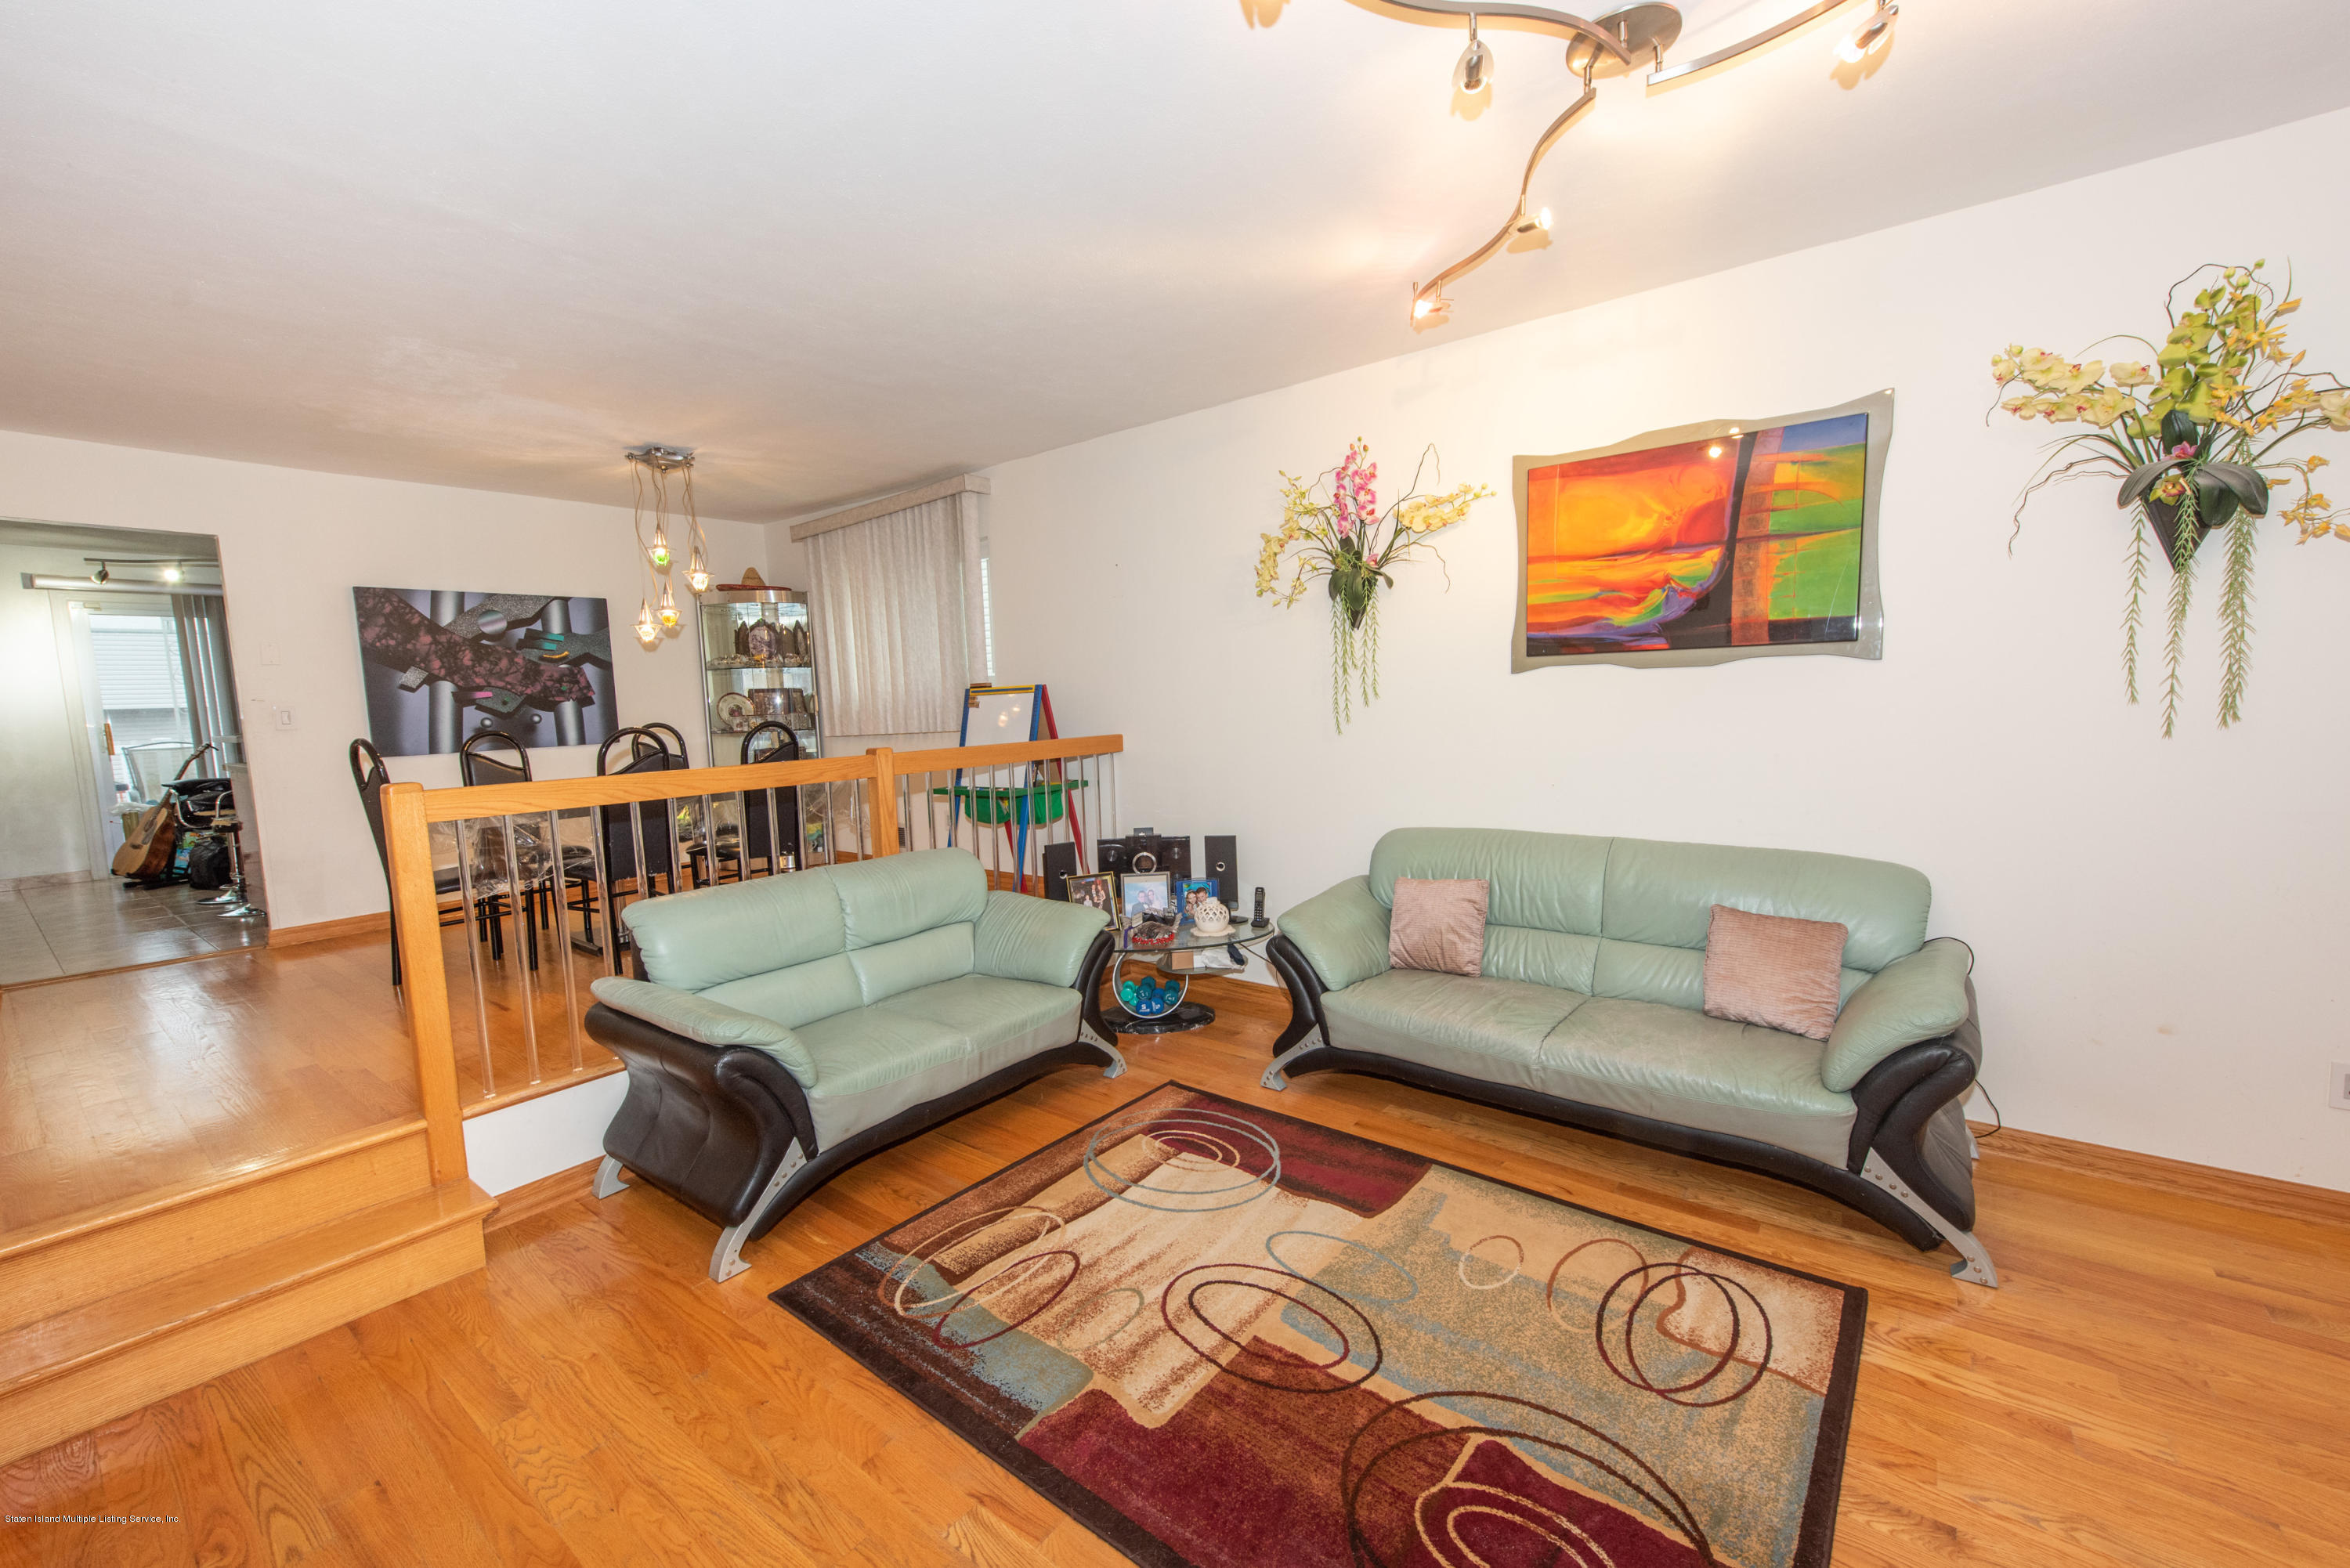 Single Family - Semi-Attached 76 Mcveigh Avenue  Staten Island, NY 10314, MLS-1133370-3